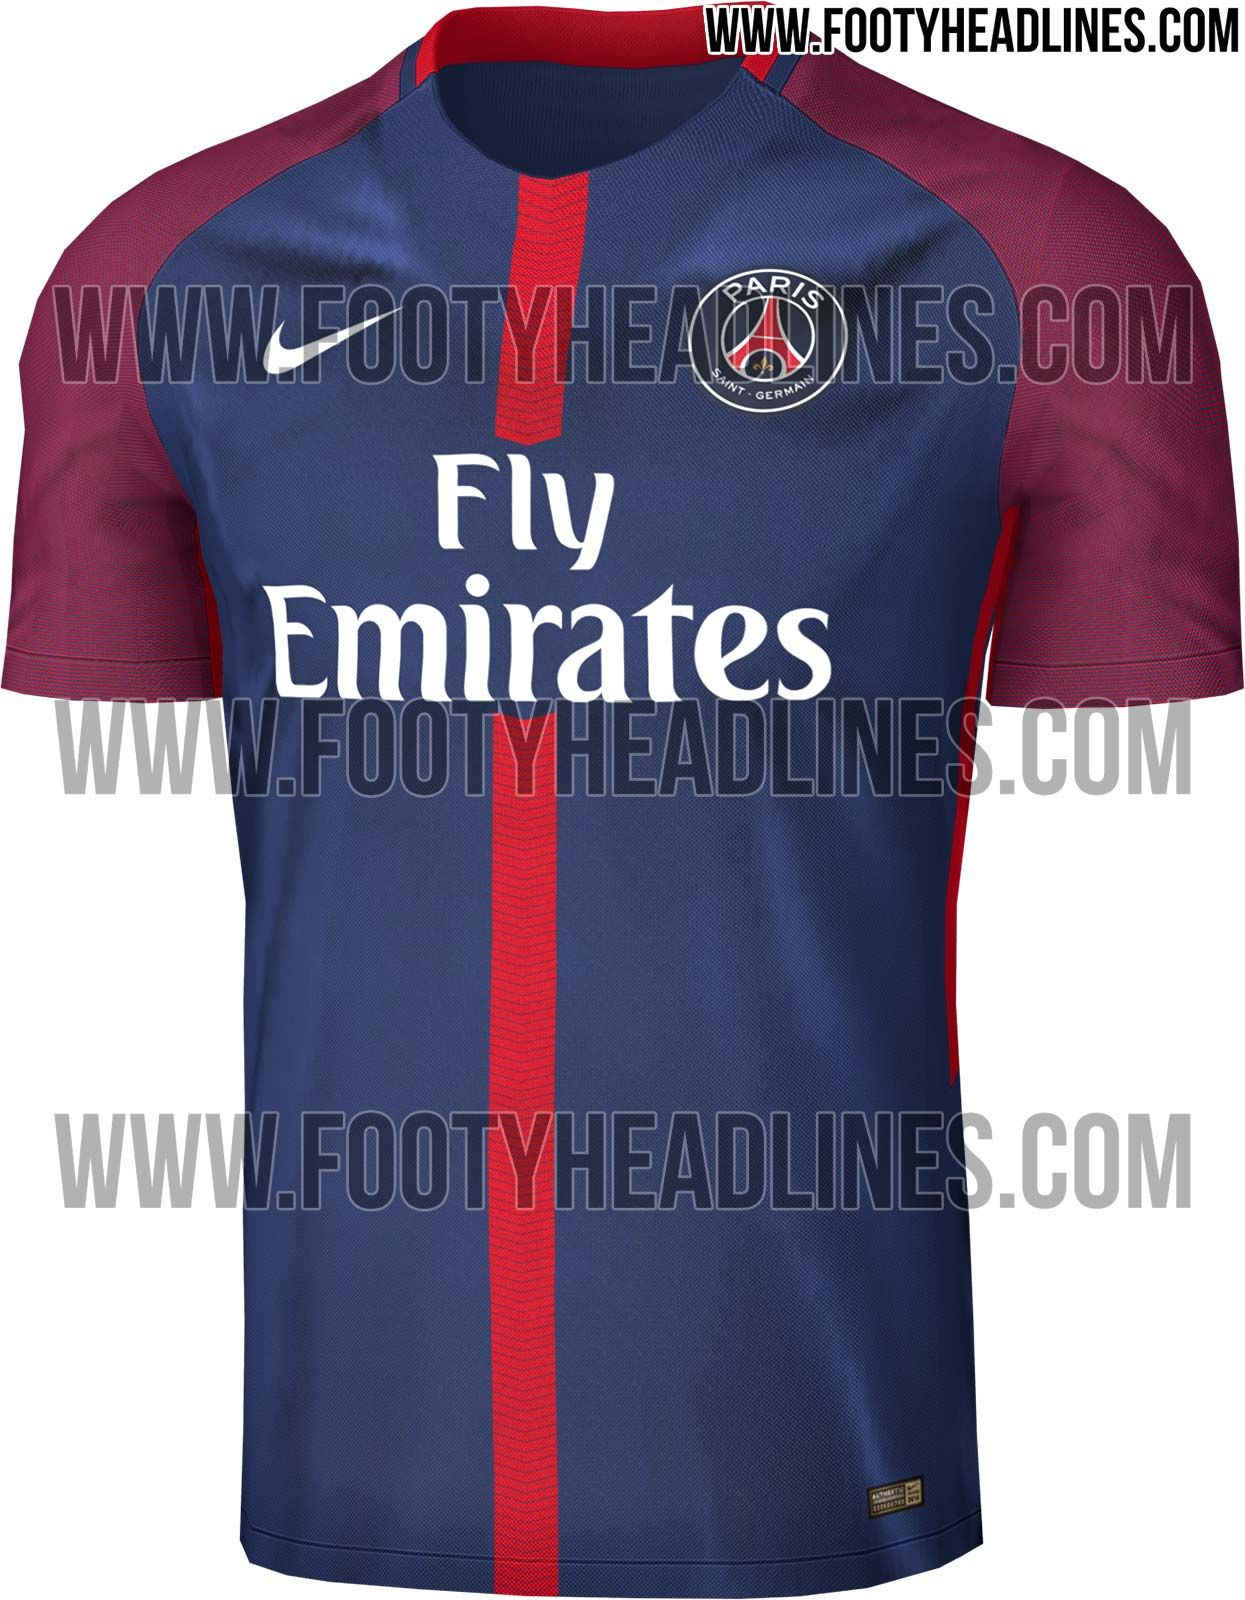 The PSG home kit introduces a more vibrant, bolder look than most recent  ones. It's once again made by long-term PSG jersey supplier Nike.